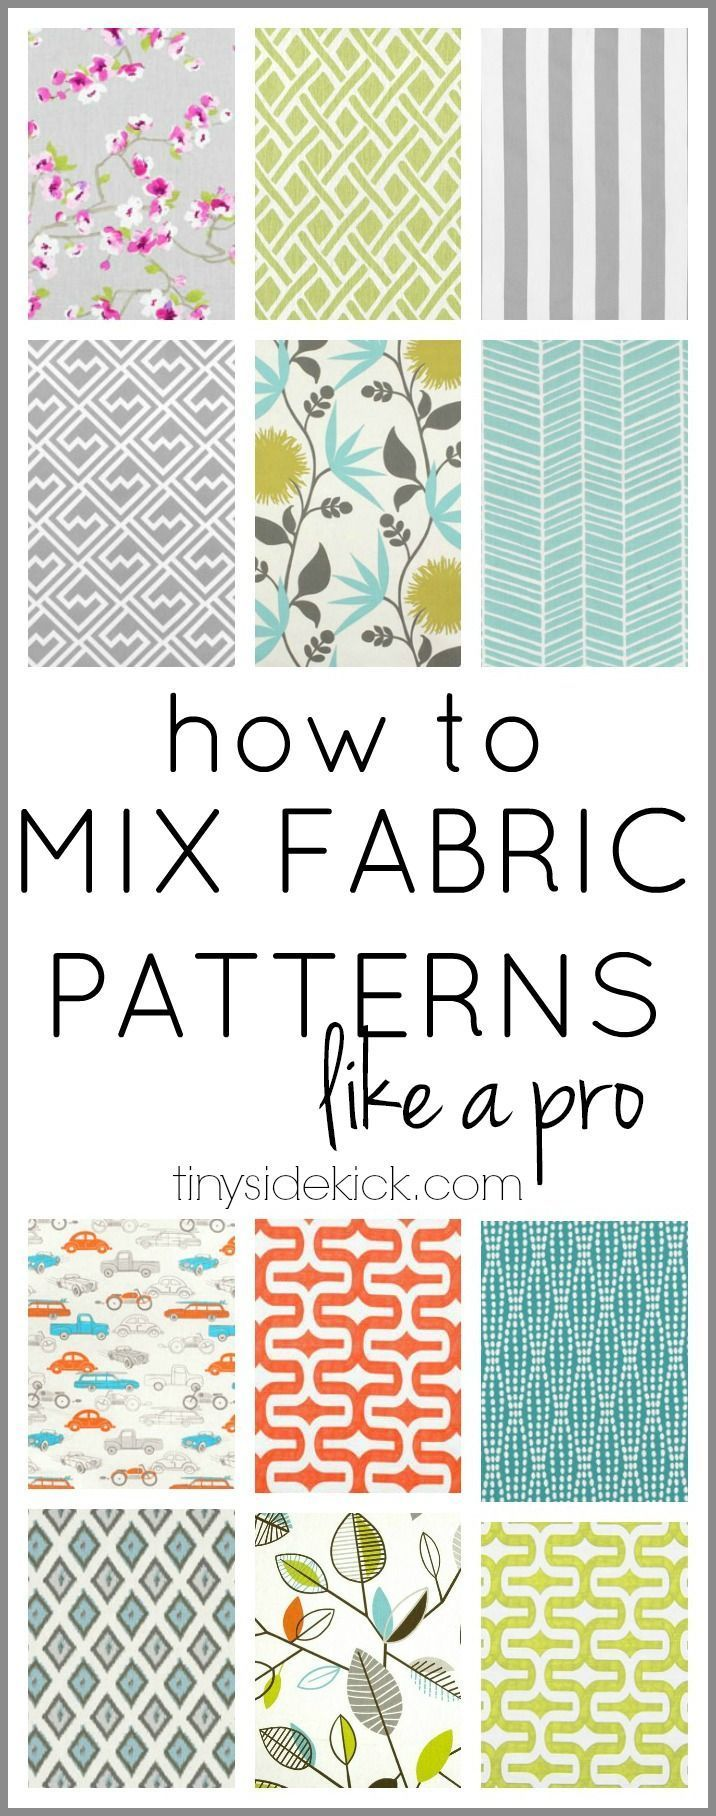 this post is the best description of how to choose fabrics